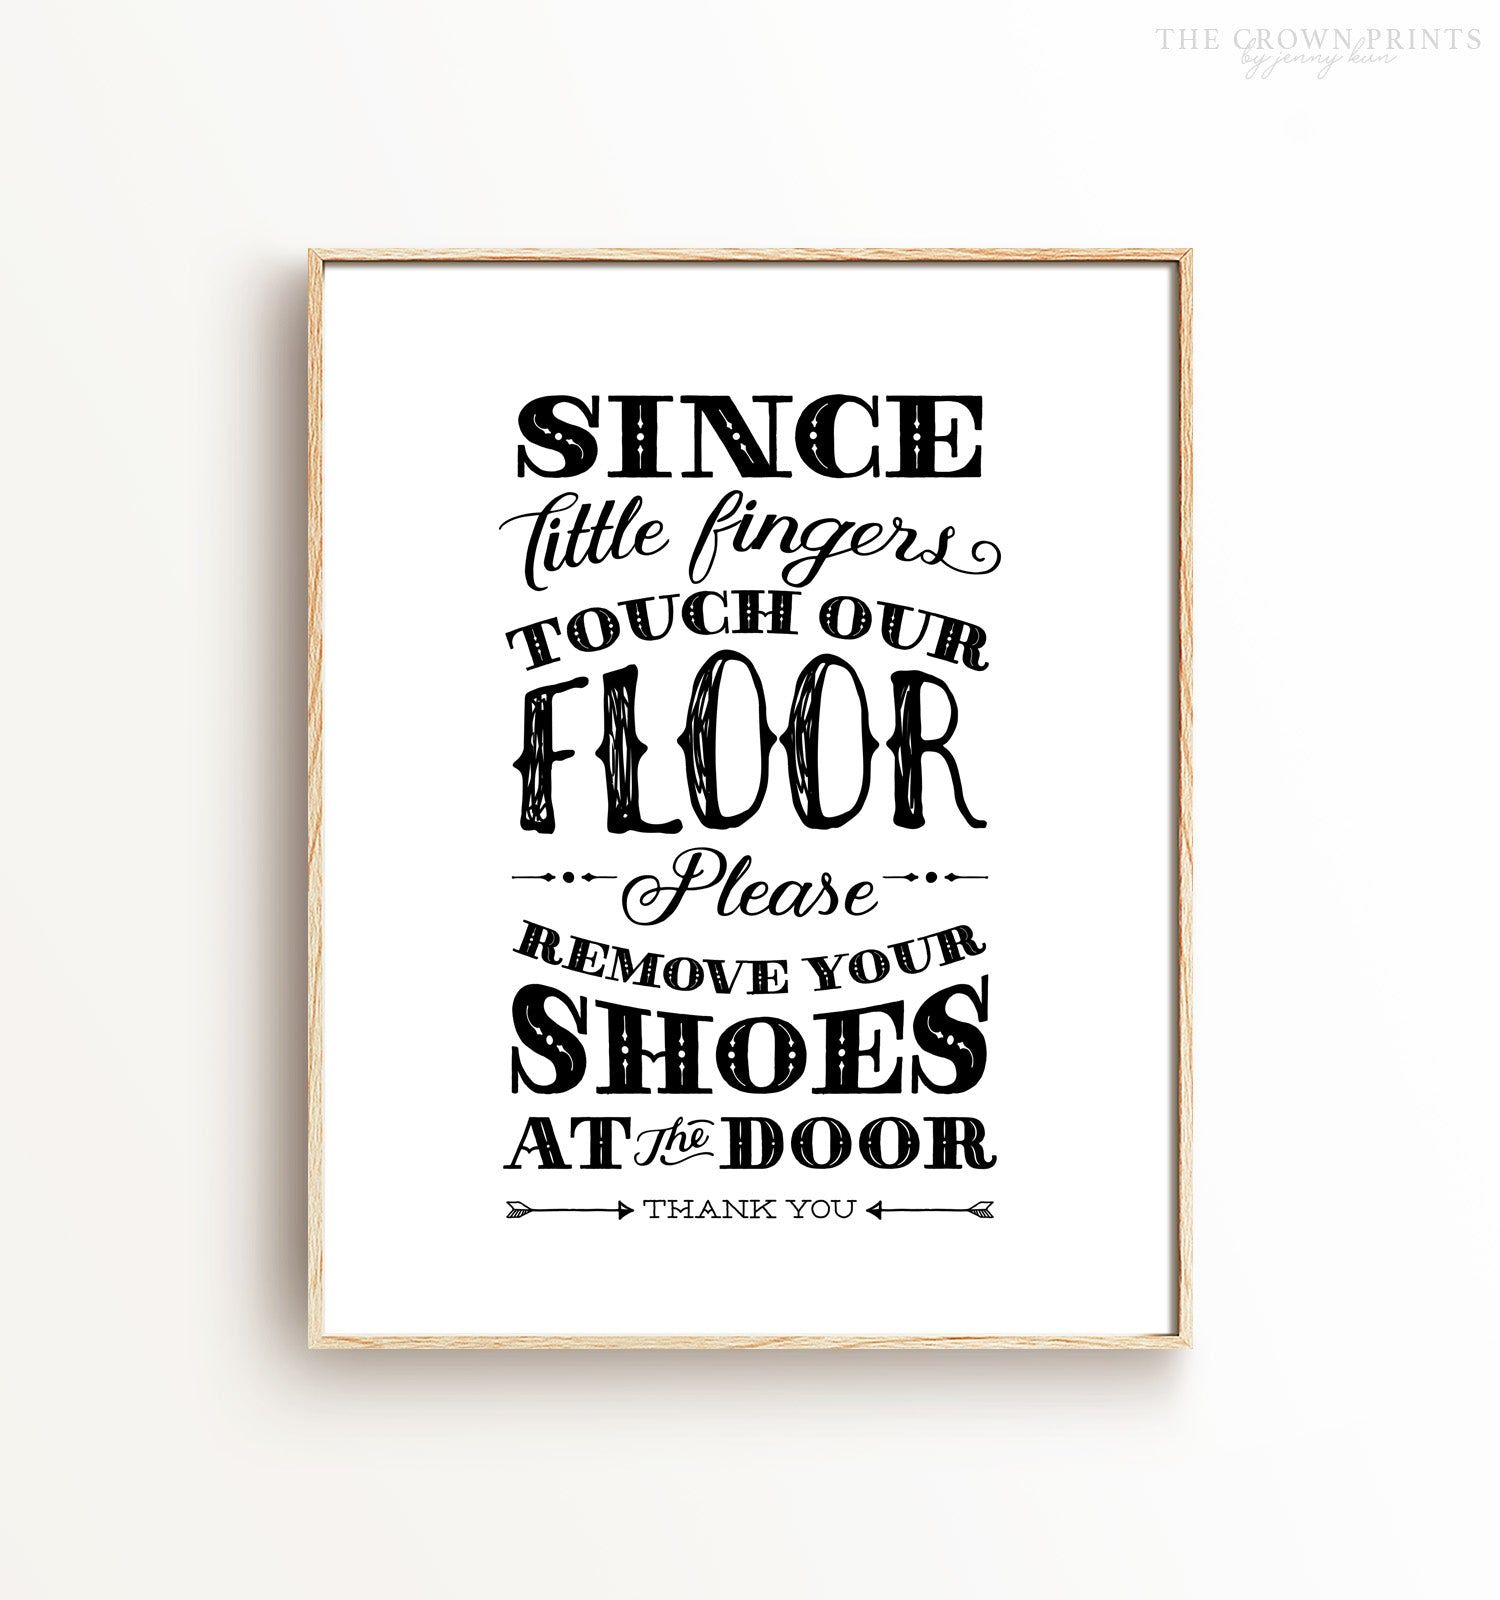 Since little fingers touch this floor print